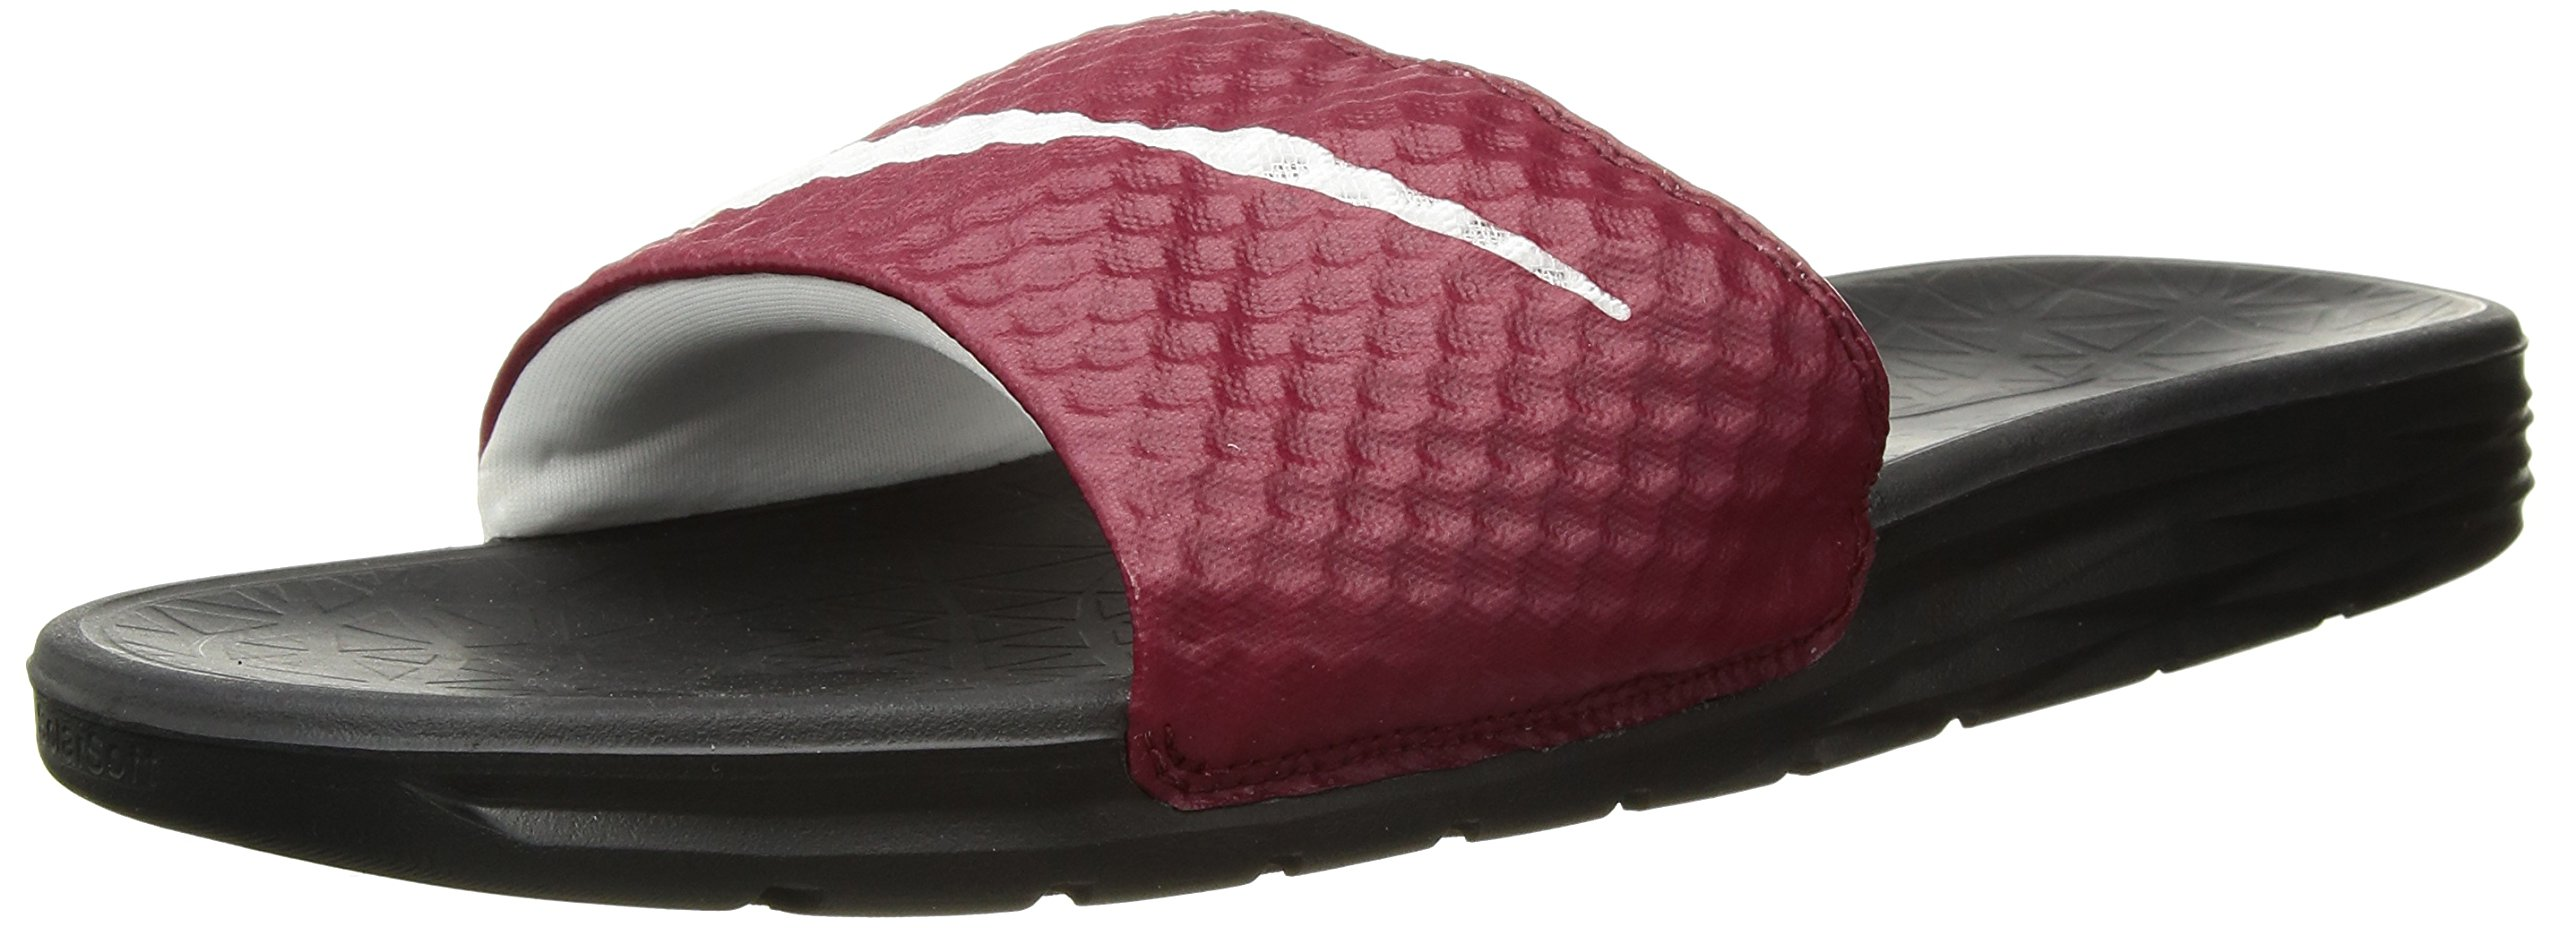 f8c629c8dfdb6 Galleon - Nike Men s Benassi Solarsoft Slide Athletic Sandal